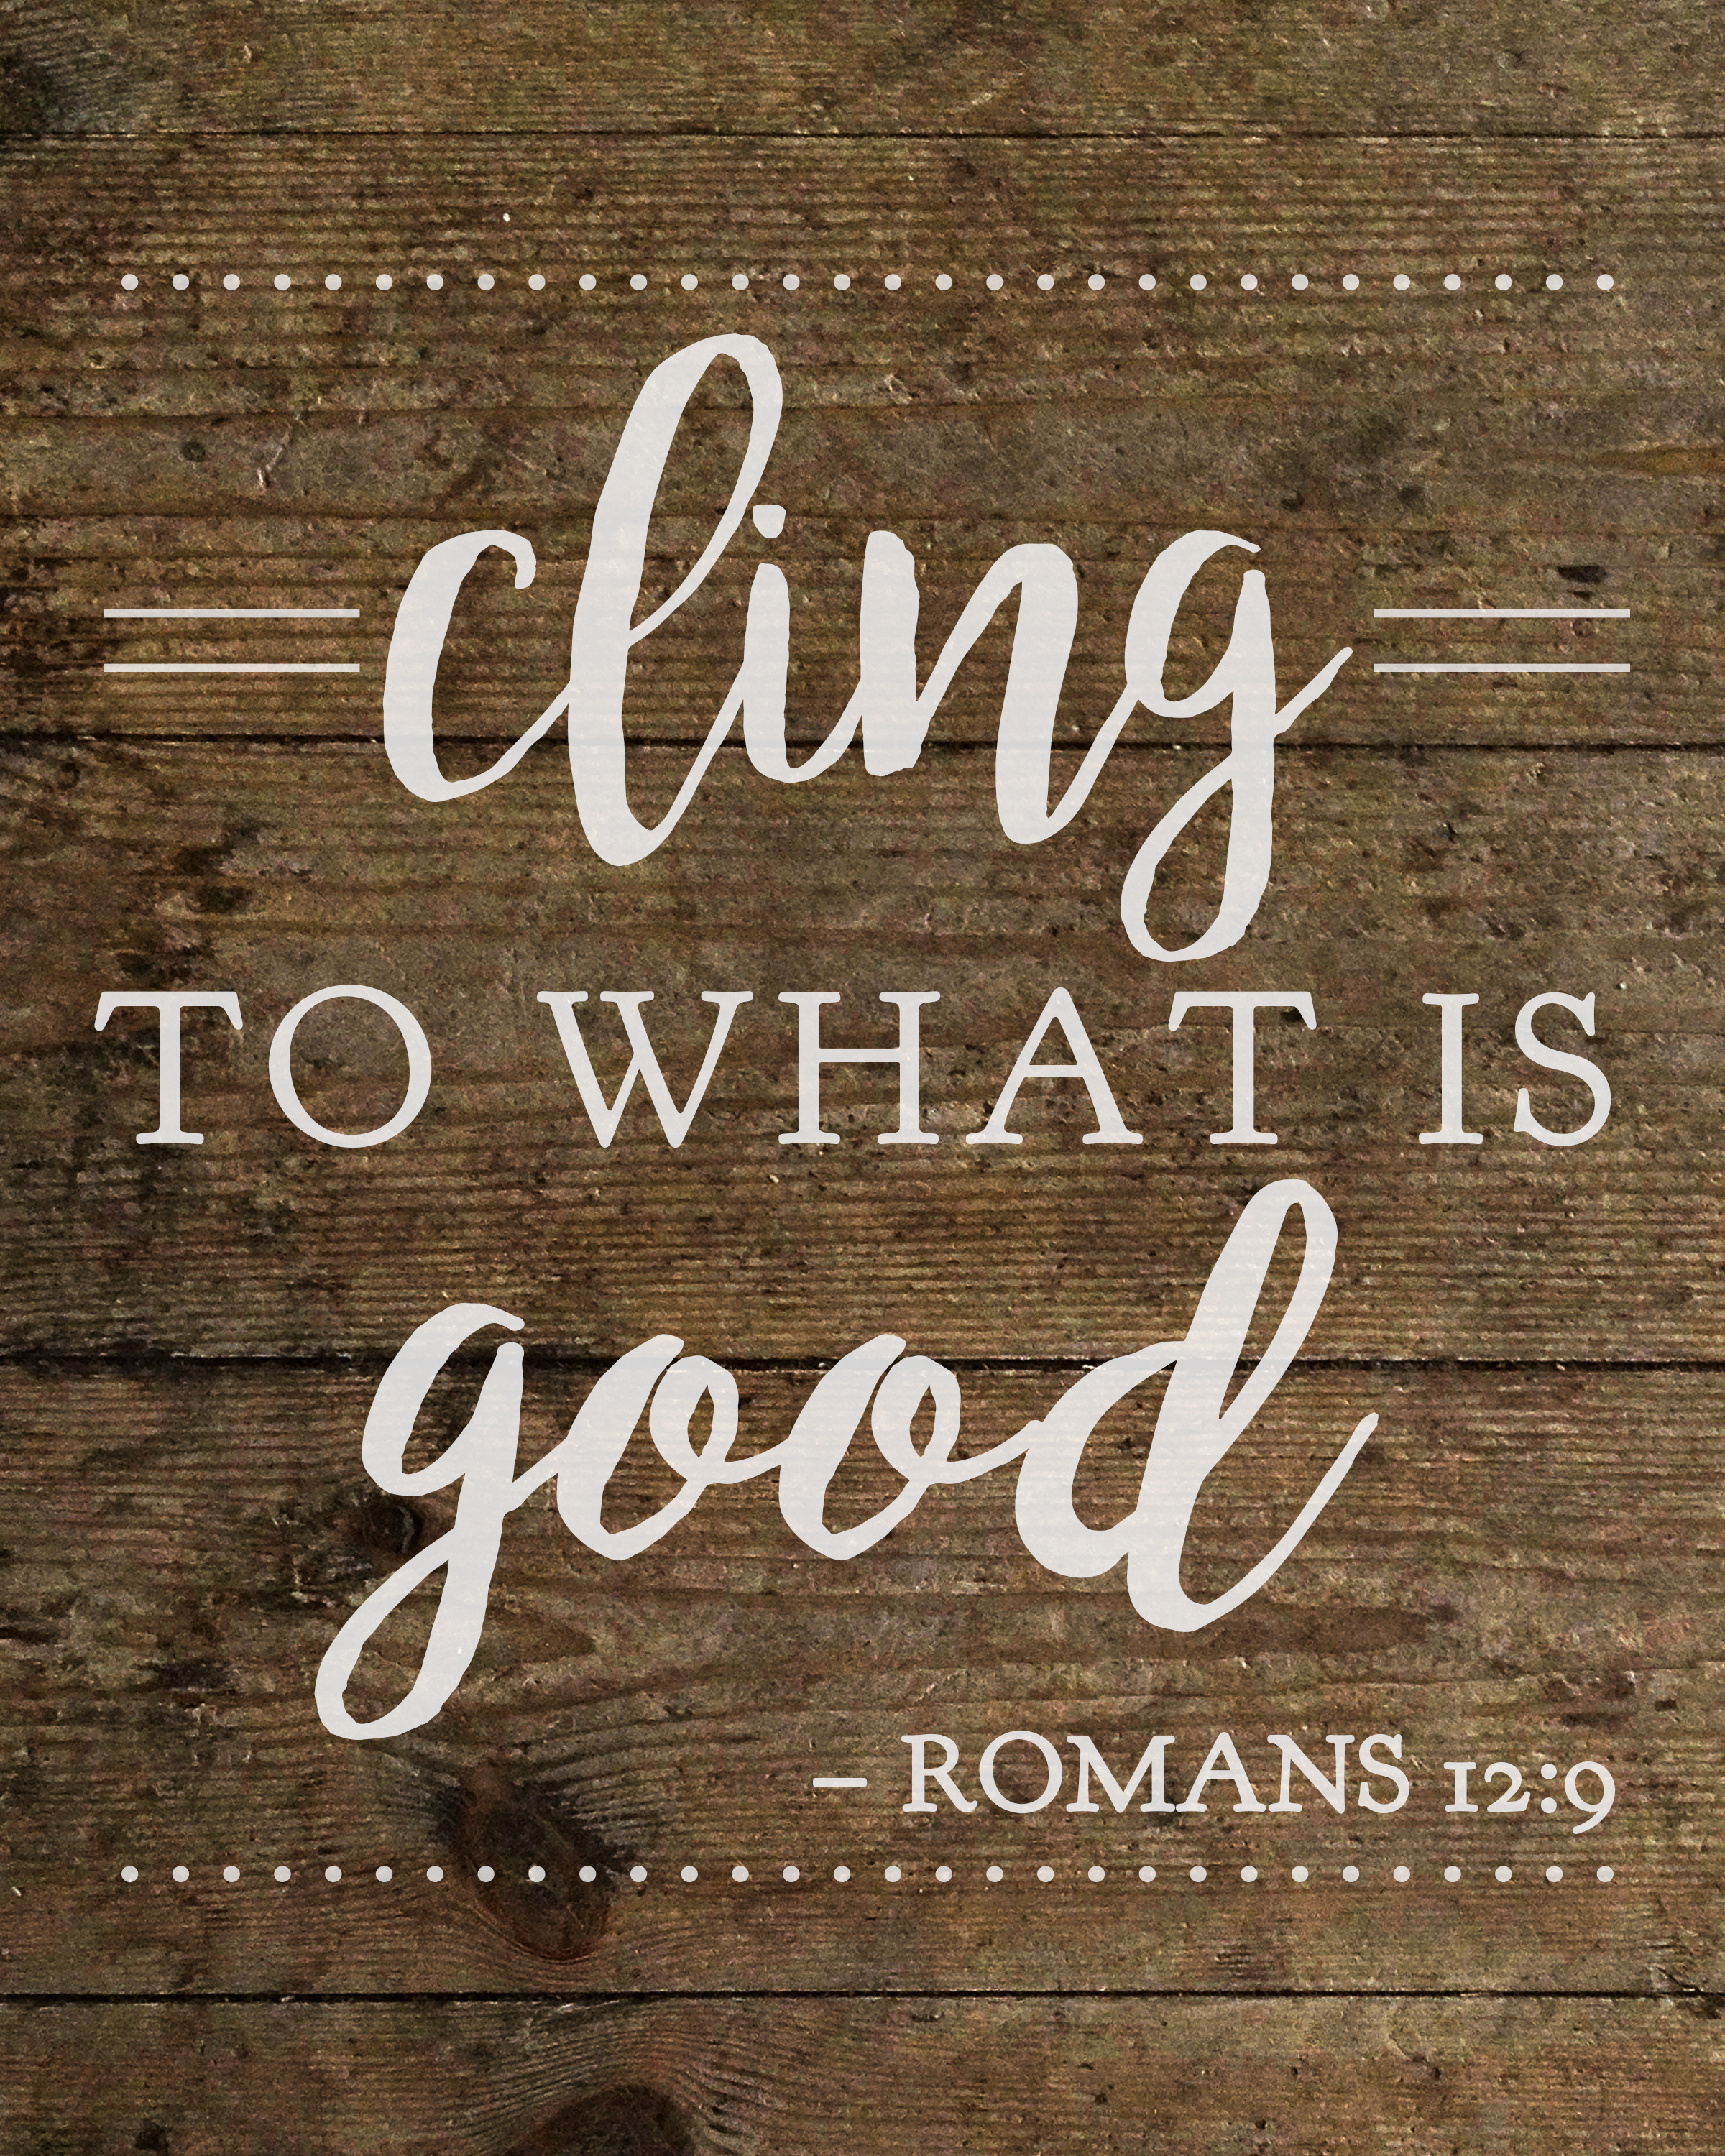 Bible Verse Free Printable Cling To What Is Good Romans 12:9